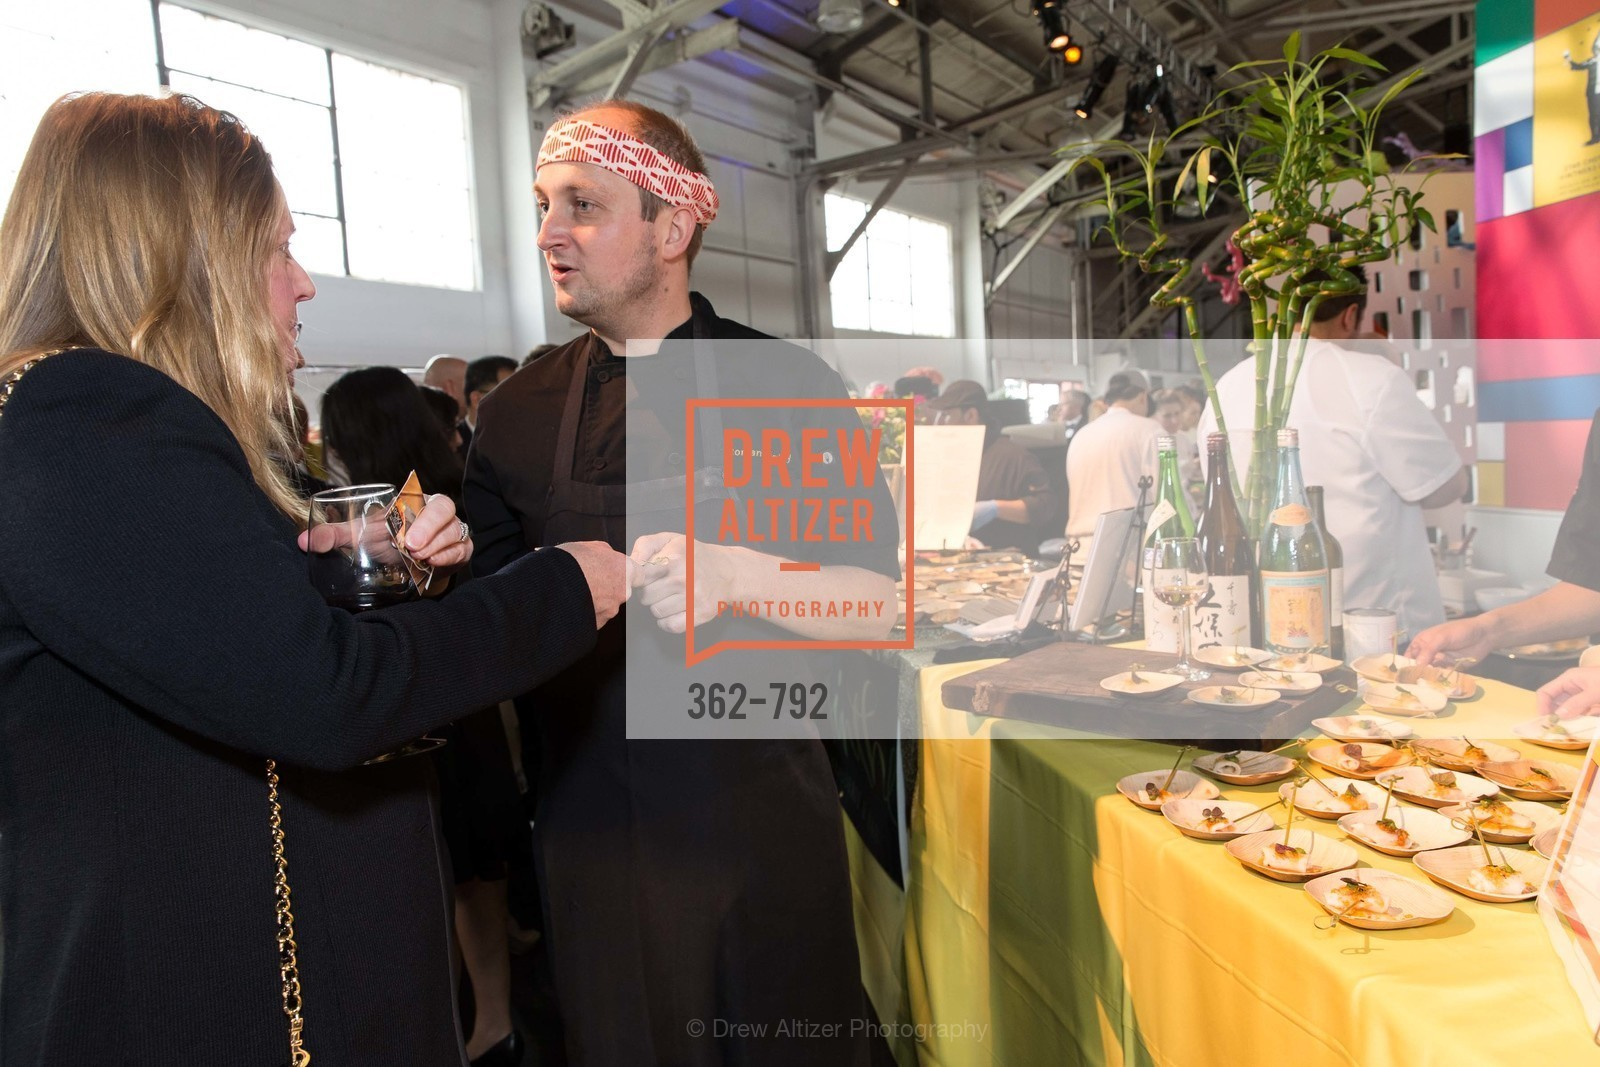 Roman Petry, MEALS ON WHEELS OF SAN FRANCISCO'S 28th Annual Star Chefs and Vintners Gala, US, April 19th, 2015,Drew Altizer, Drew Altizer Photography, full-service agency, private events, San Francisco photographer, photographer california